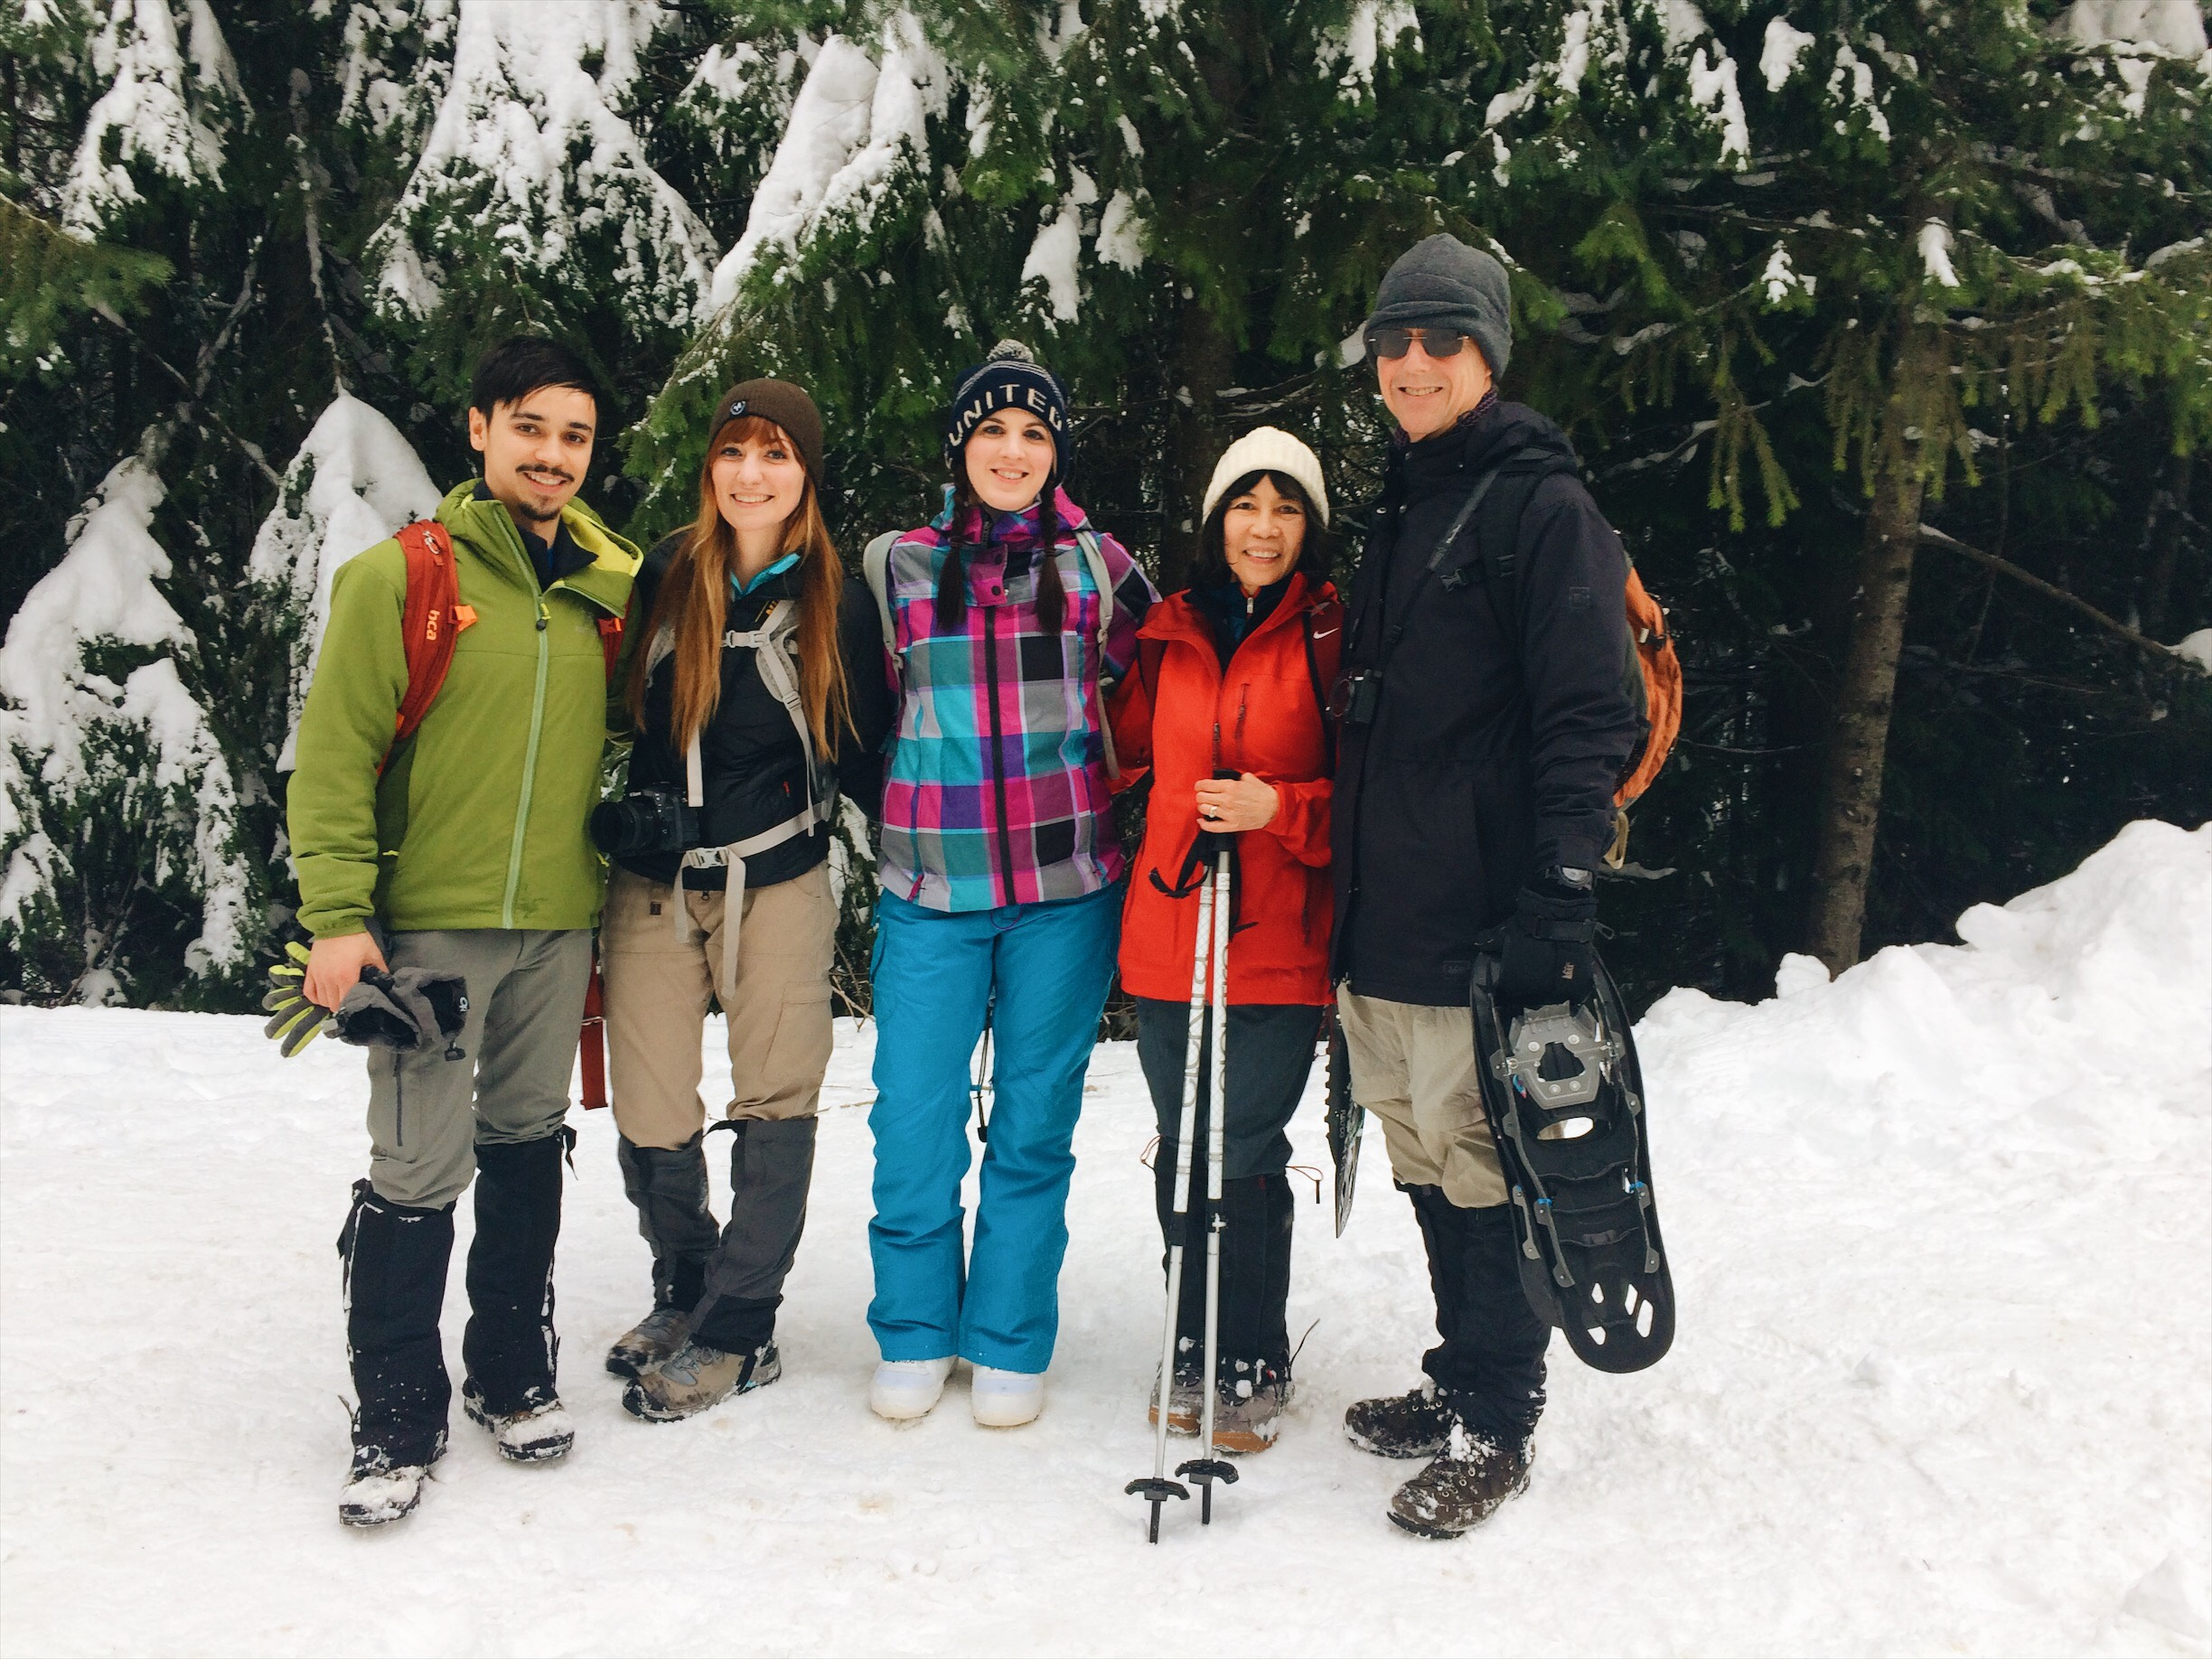 Snowshoeing in Snoqualmie